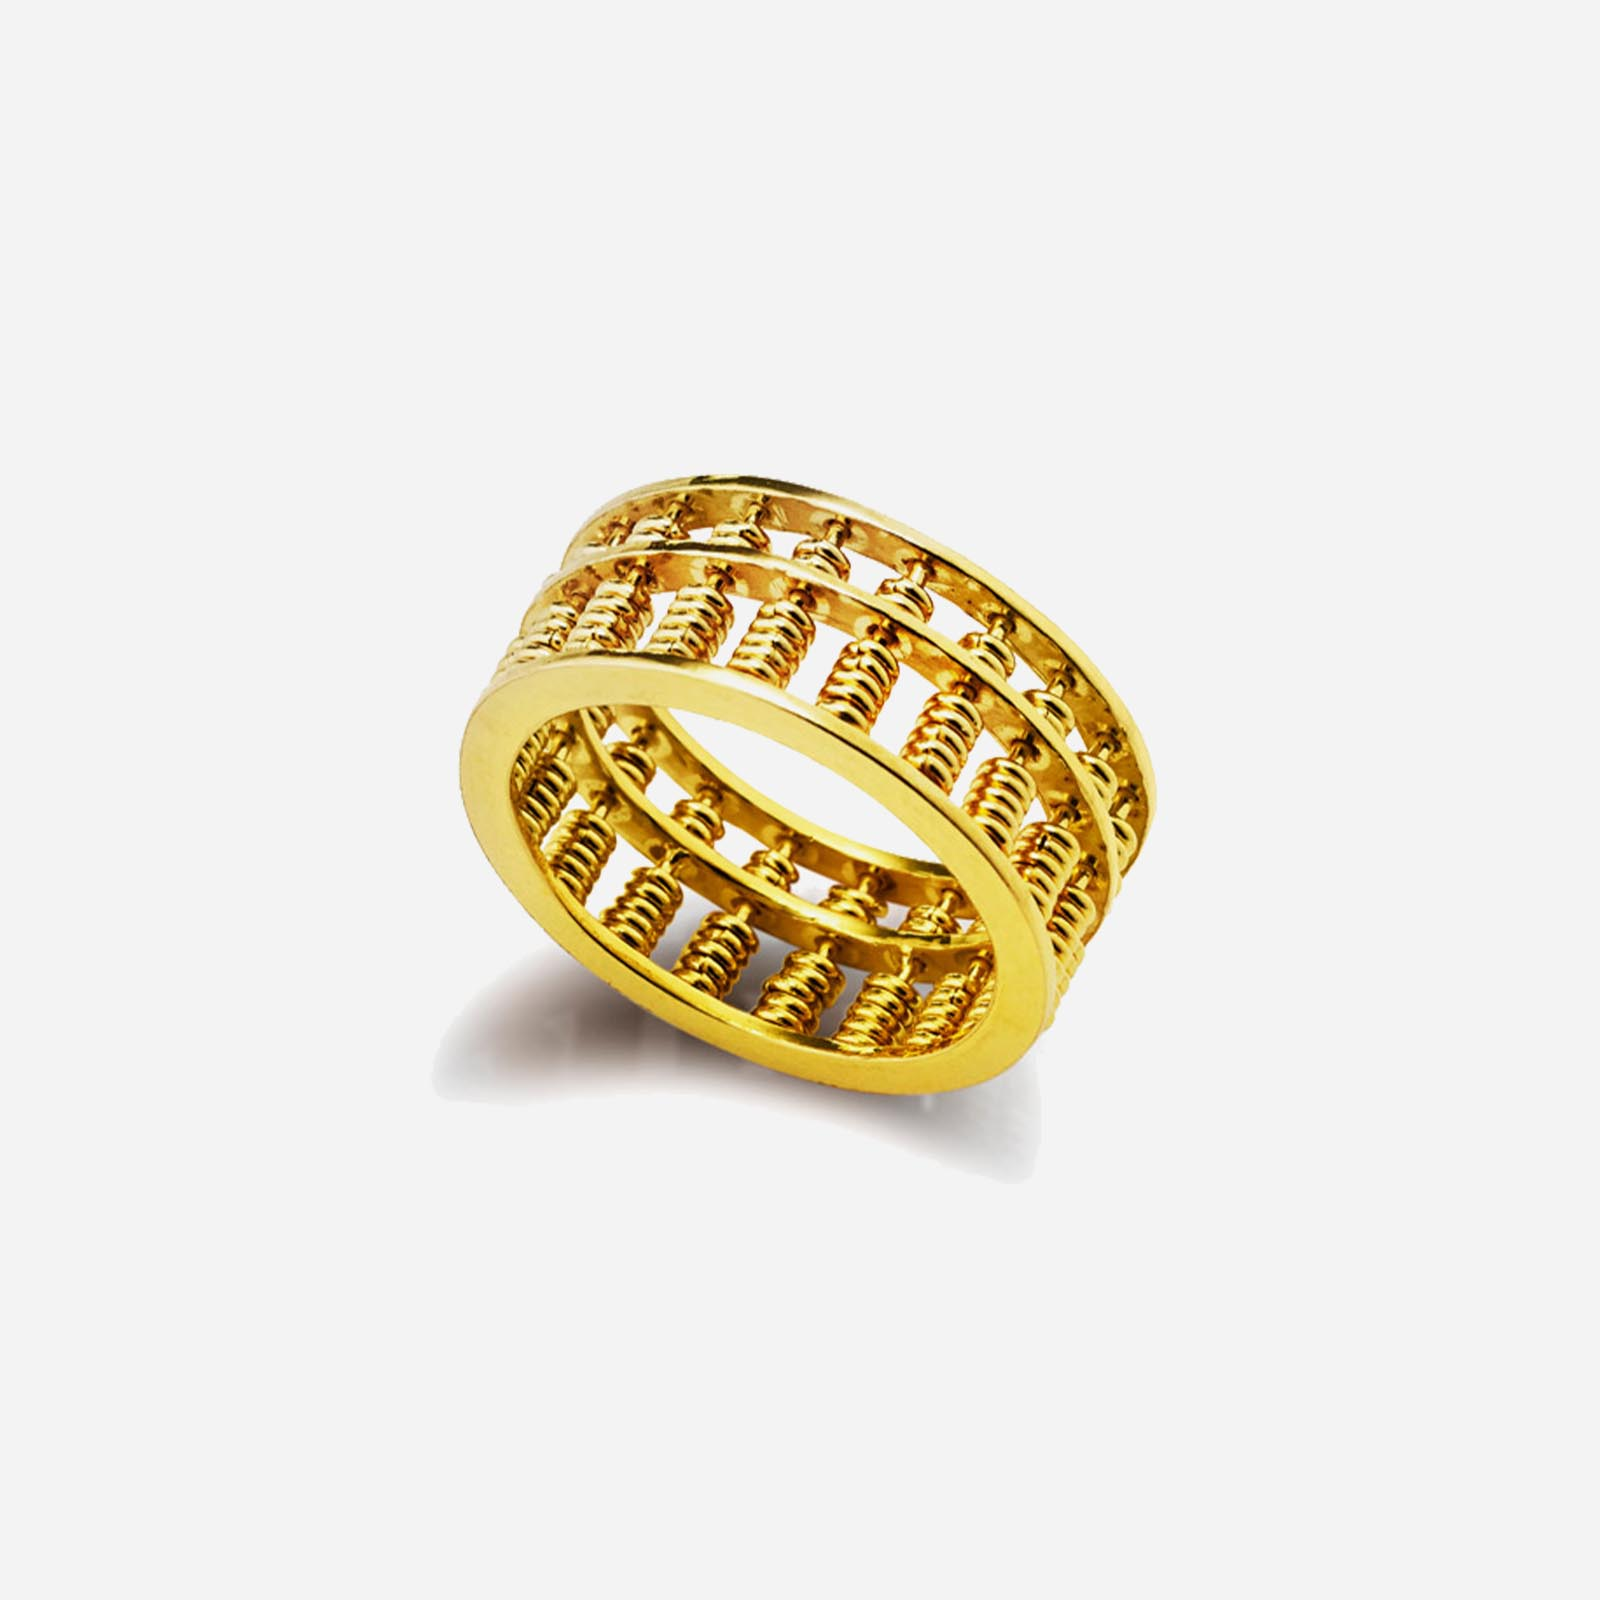 Abacus Ring (8mm)